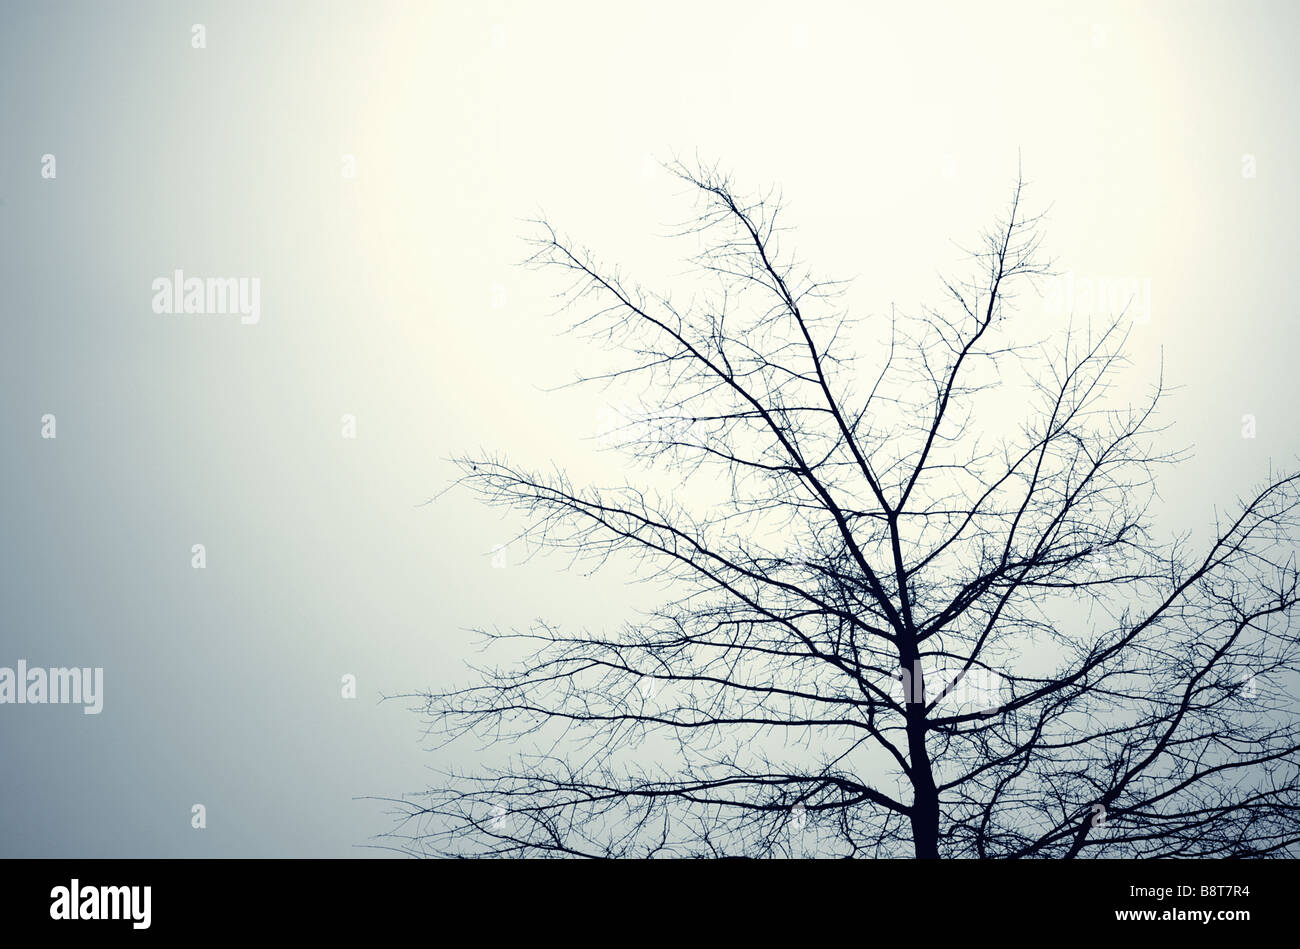 Evocative Image of a Leafless Treetop against an empty sky - Stock Image